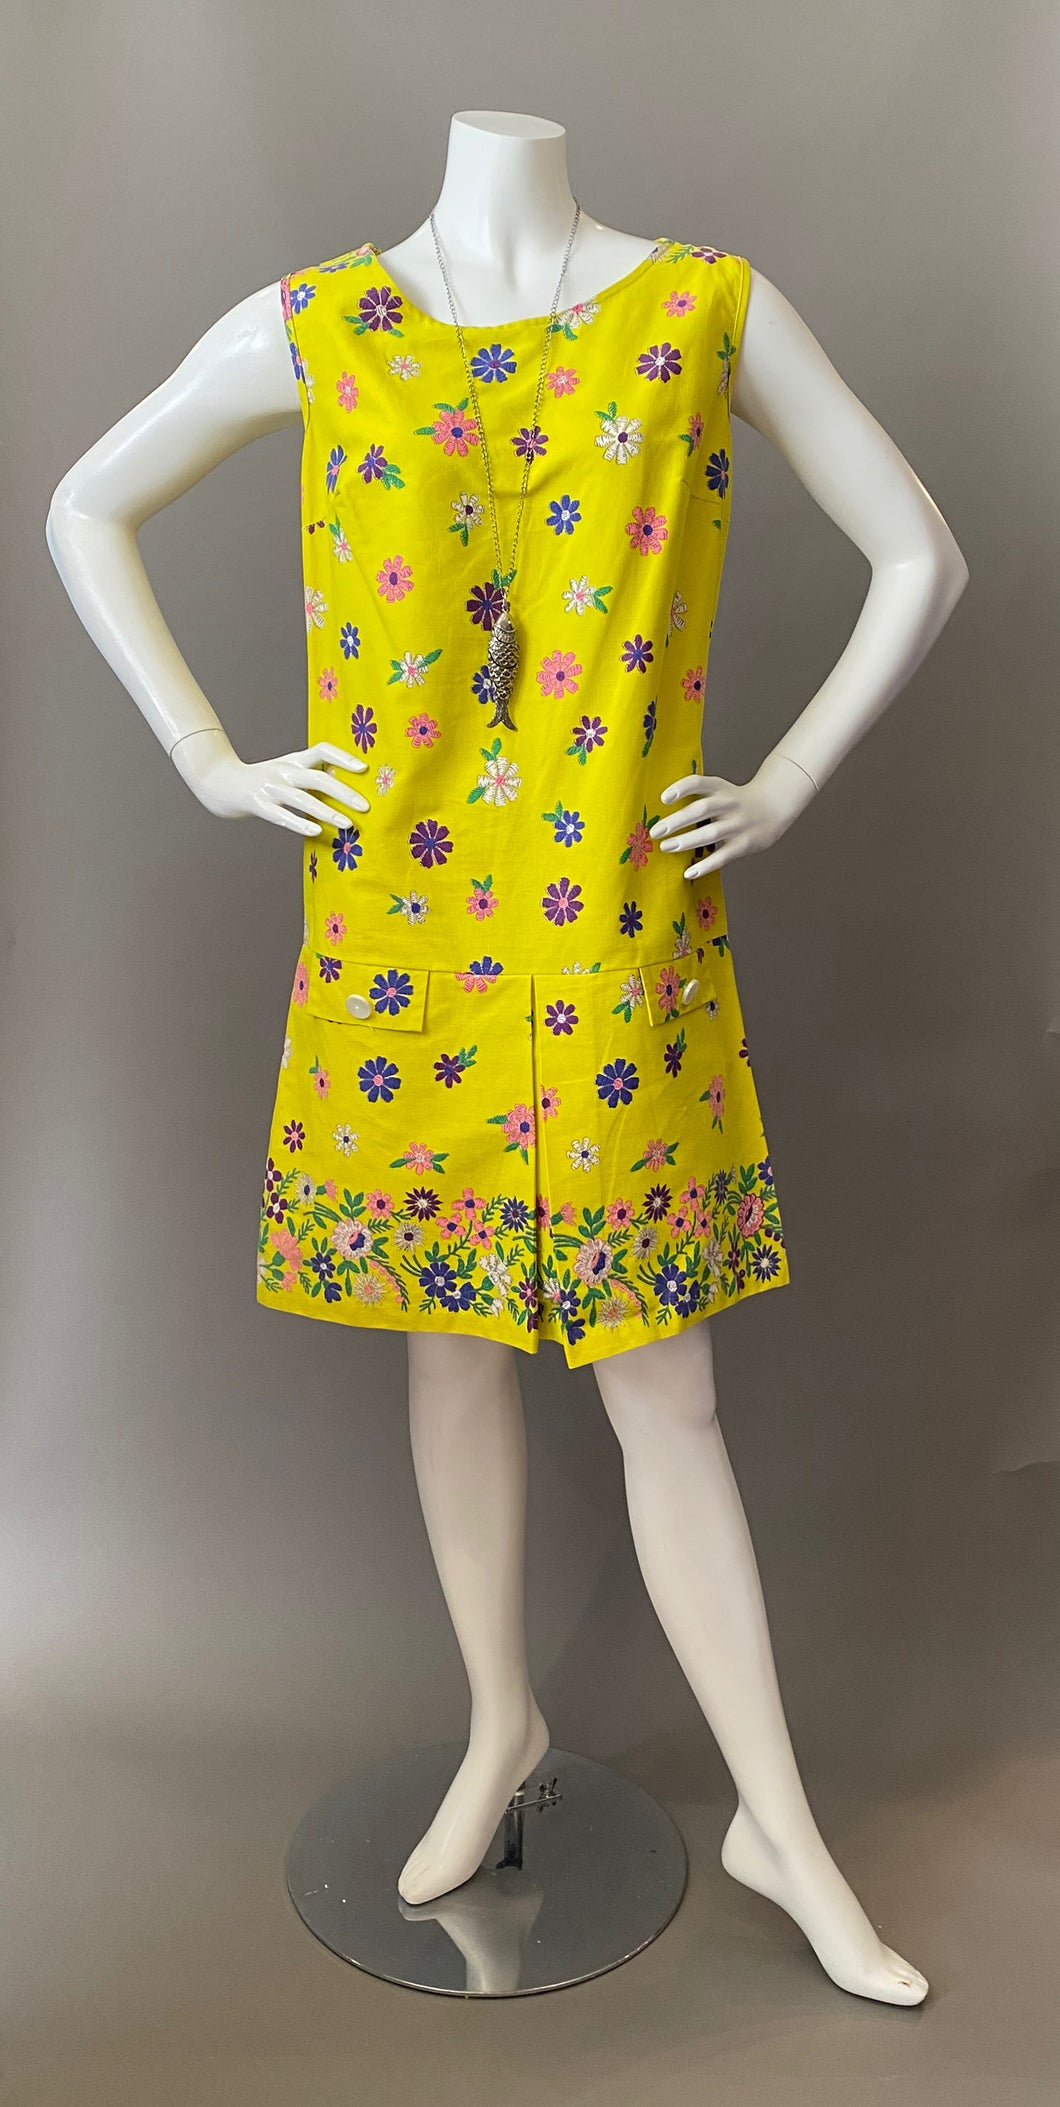 Mod Sunny Floral Border Print Cotton Sun Dress